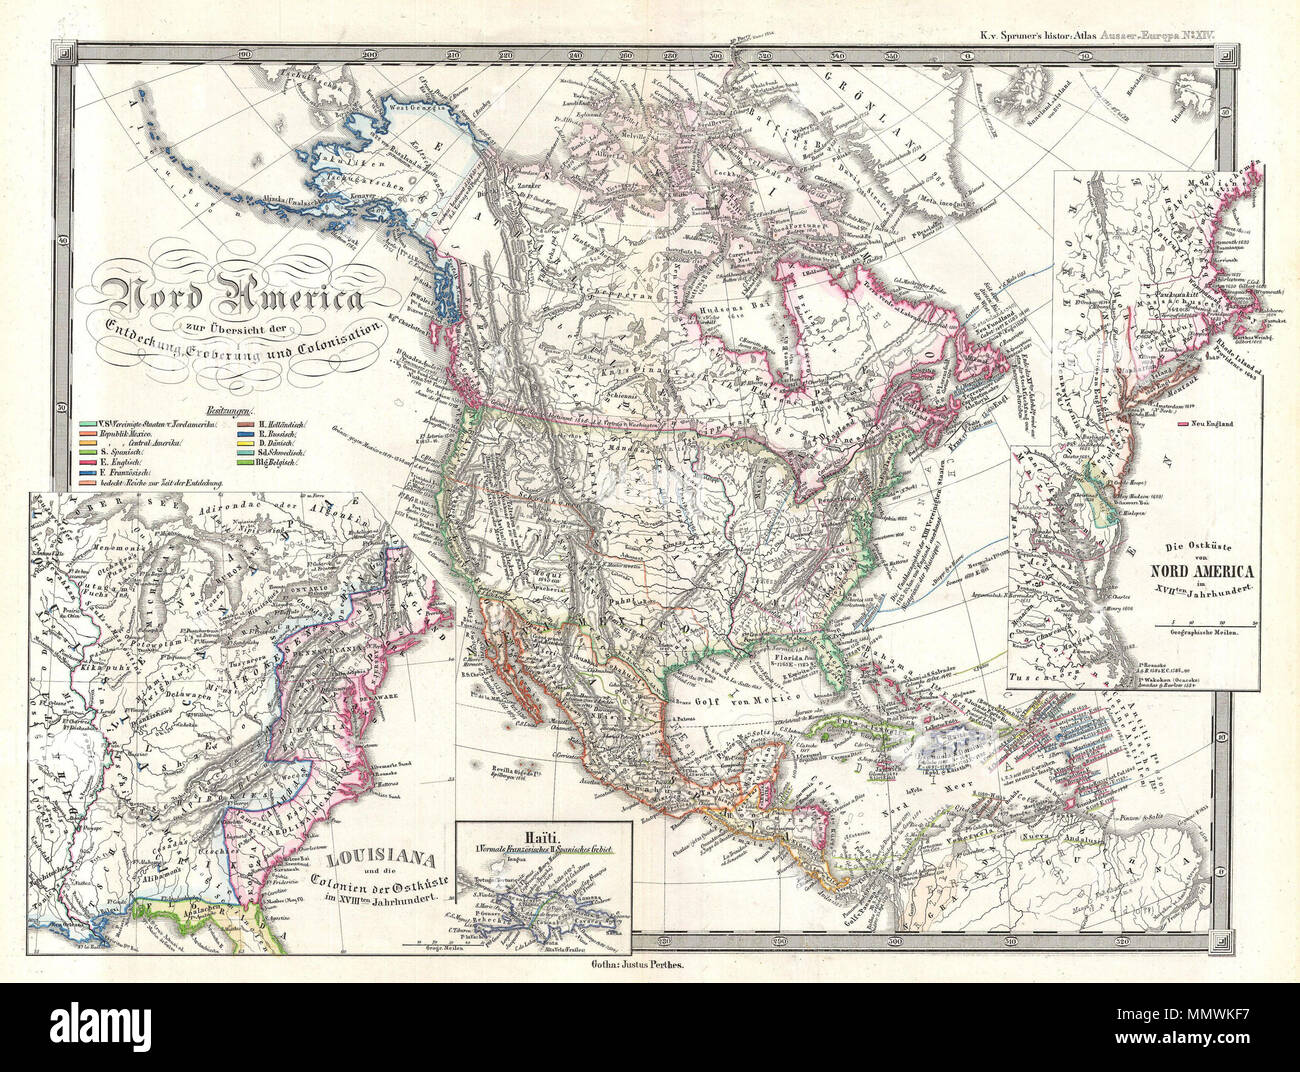 Homeland California Map.English This Is Karl Von Spruner S 1855 Map Of North America With